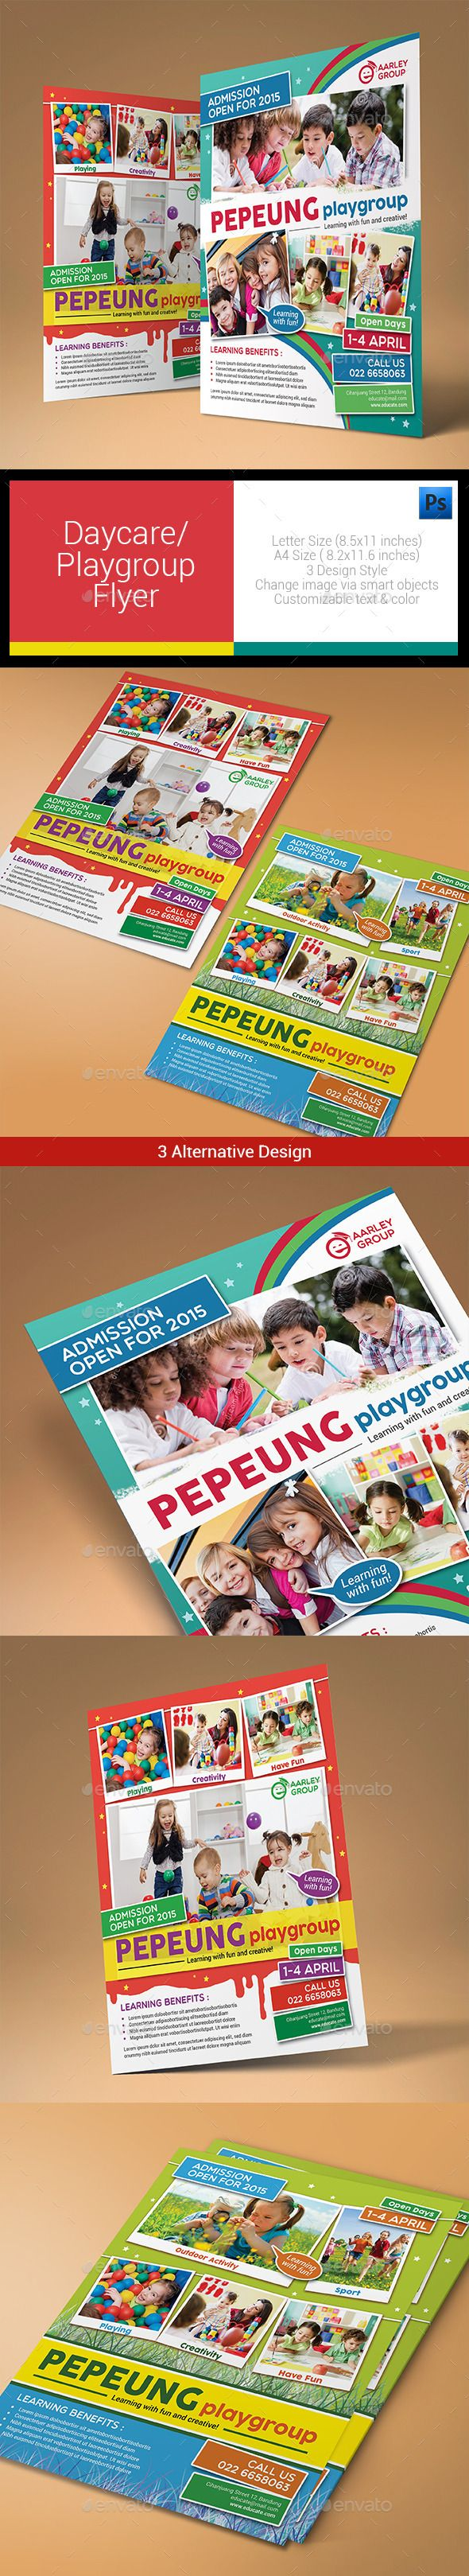 best images about editorial corporate brochure daycare playgroup flyer template